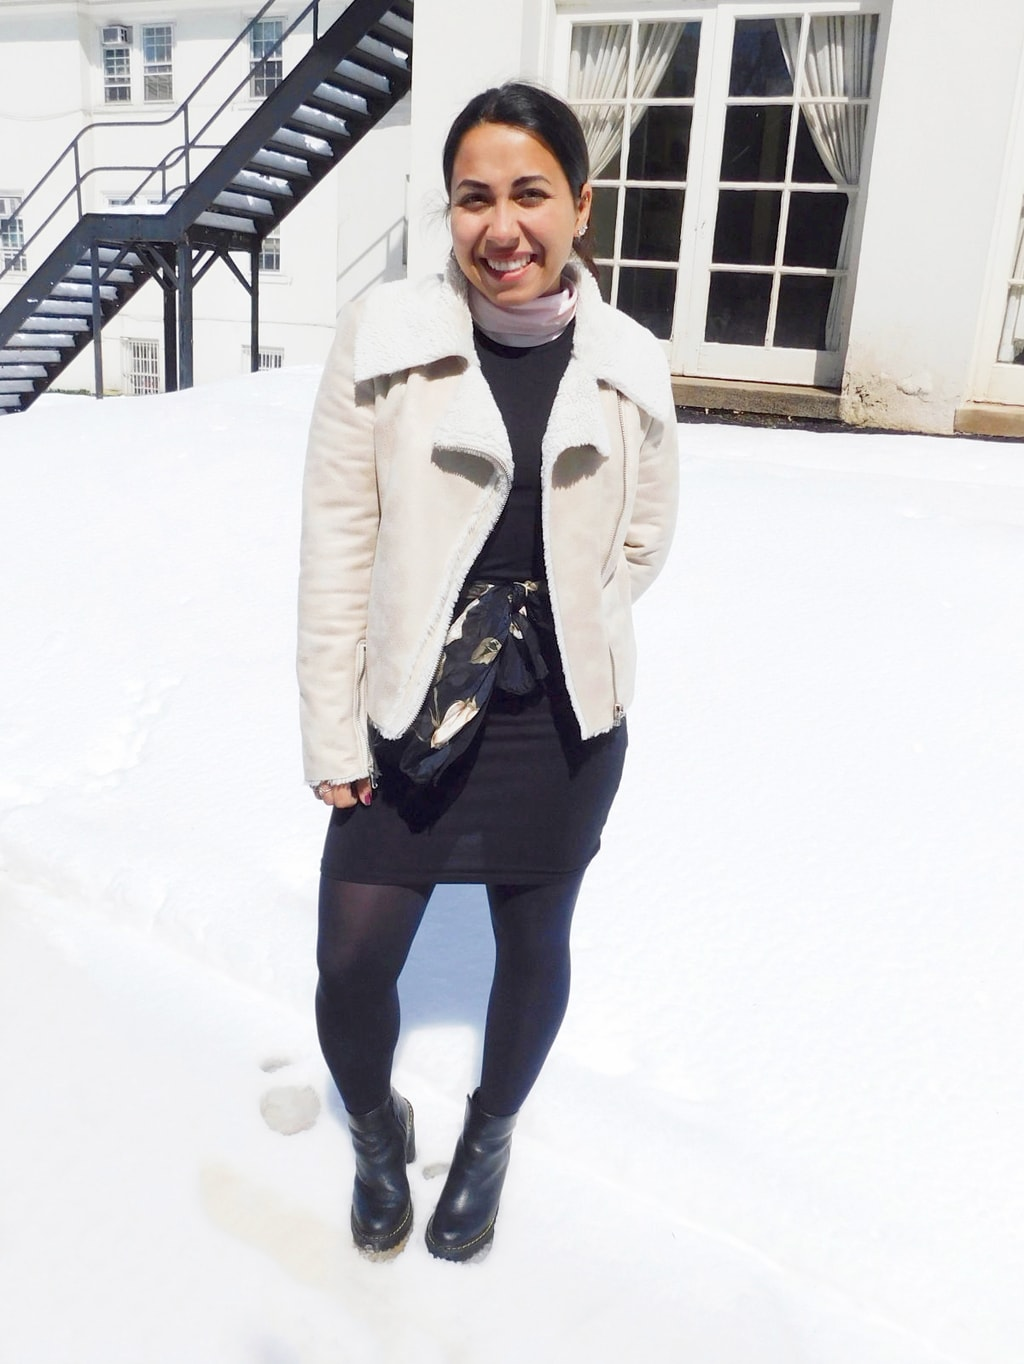 Jefferson University student Vanessa wears a springtime tank dress with a pastel pink long sleeve turtleneck underneath, opaque black tights, a white motorcycle style shearling-lined coat, a feminine black and pink scarf worn as a belt, and black rubber Doc Martens booties.